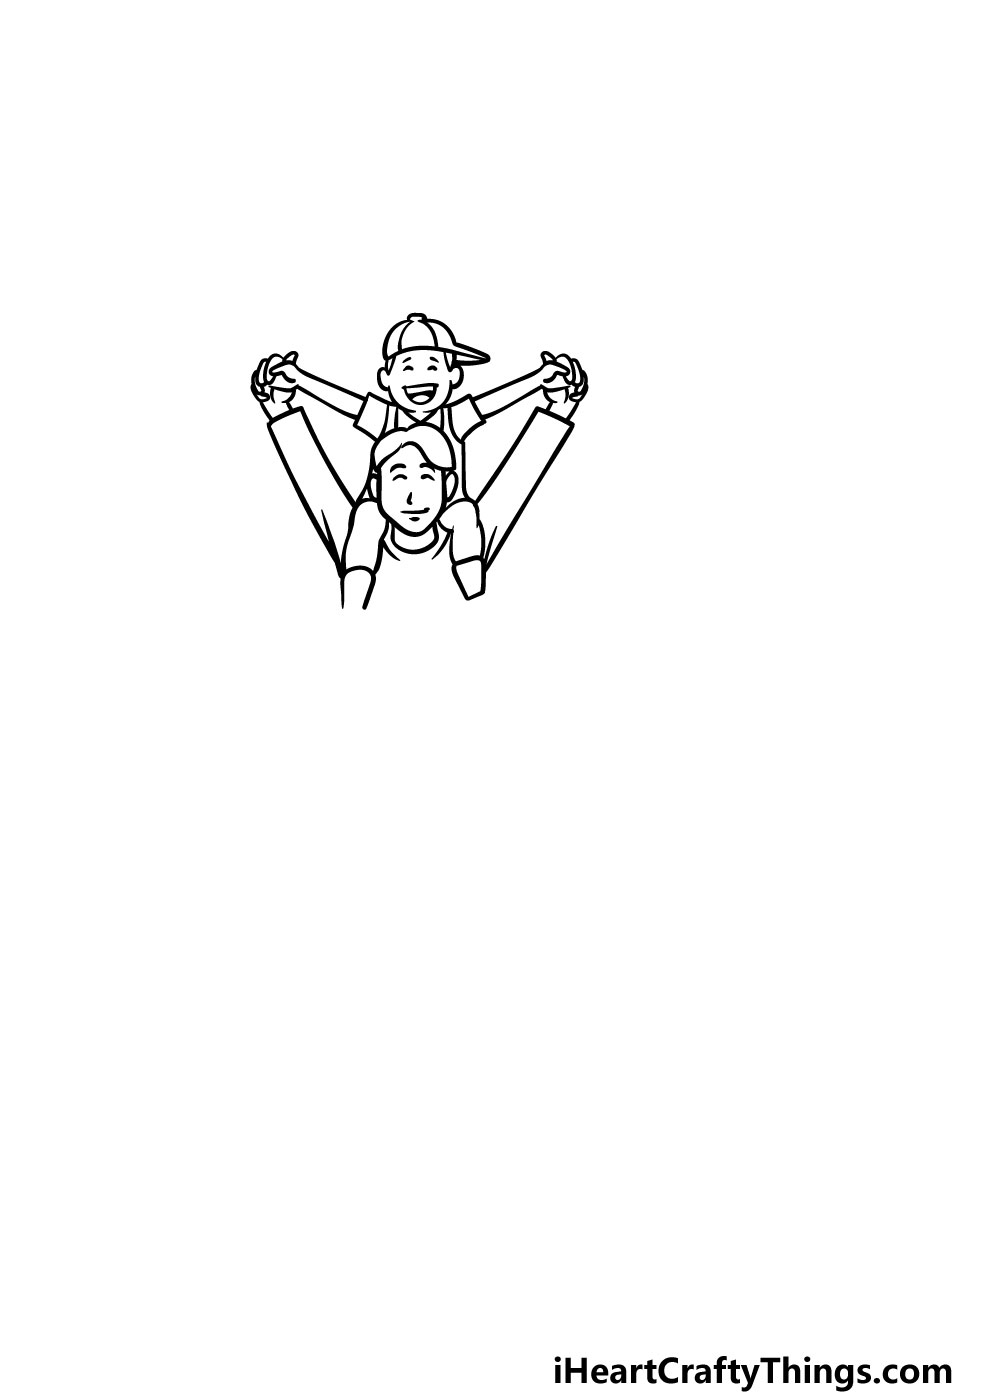 drawing a family step 3